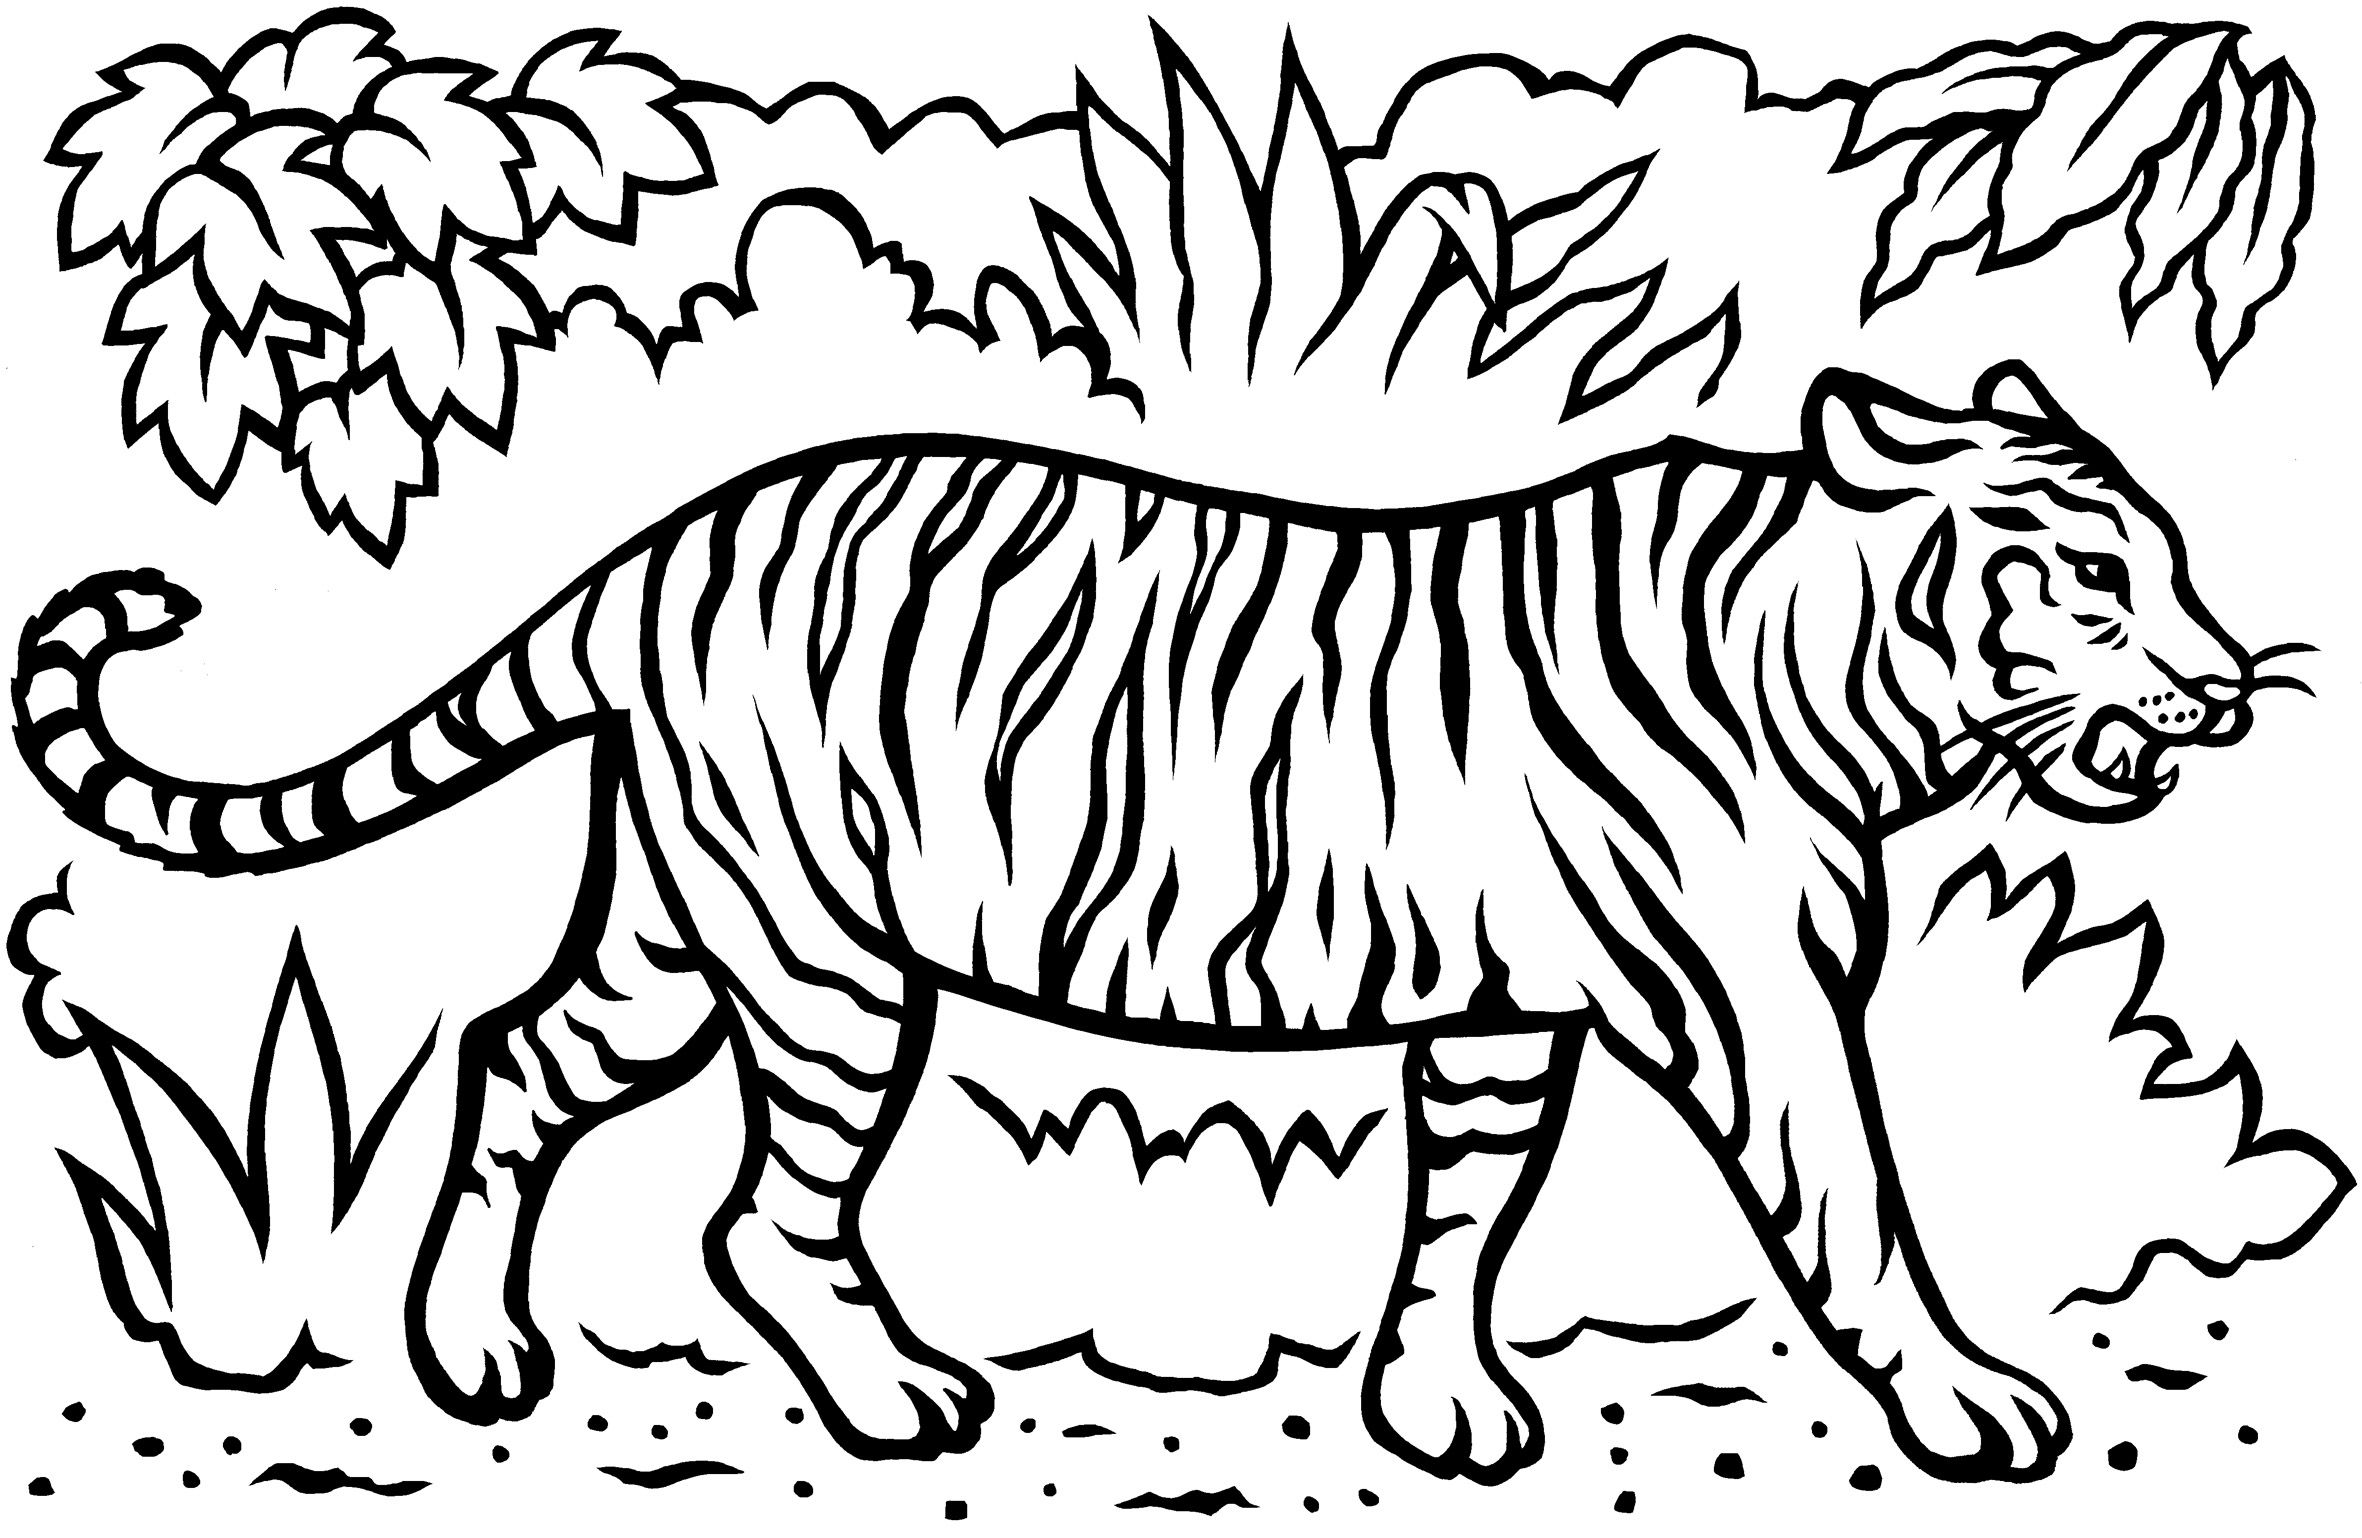 Drawn Jungle Save The Tiger 981 Shark Coloring Pages Tiger